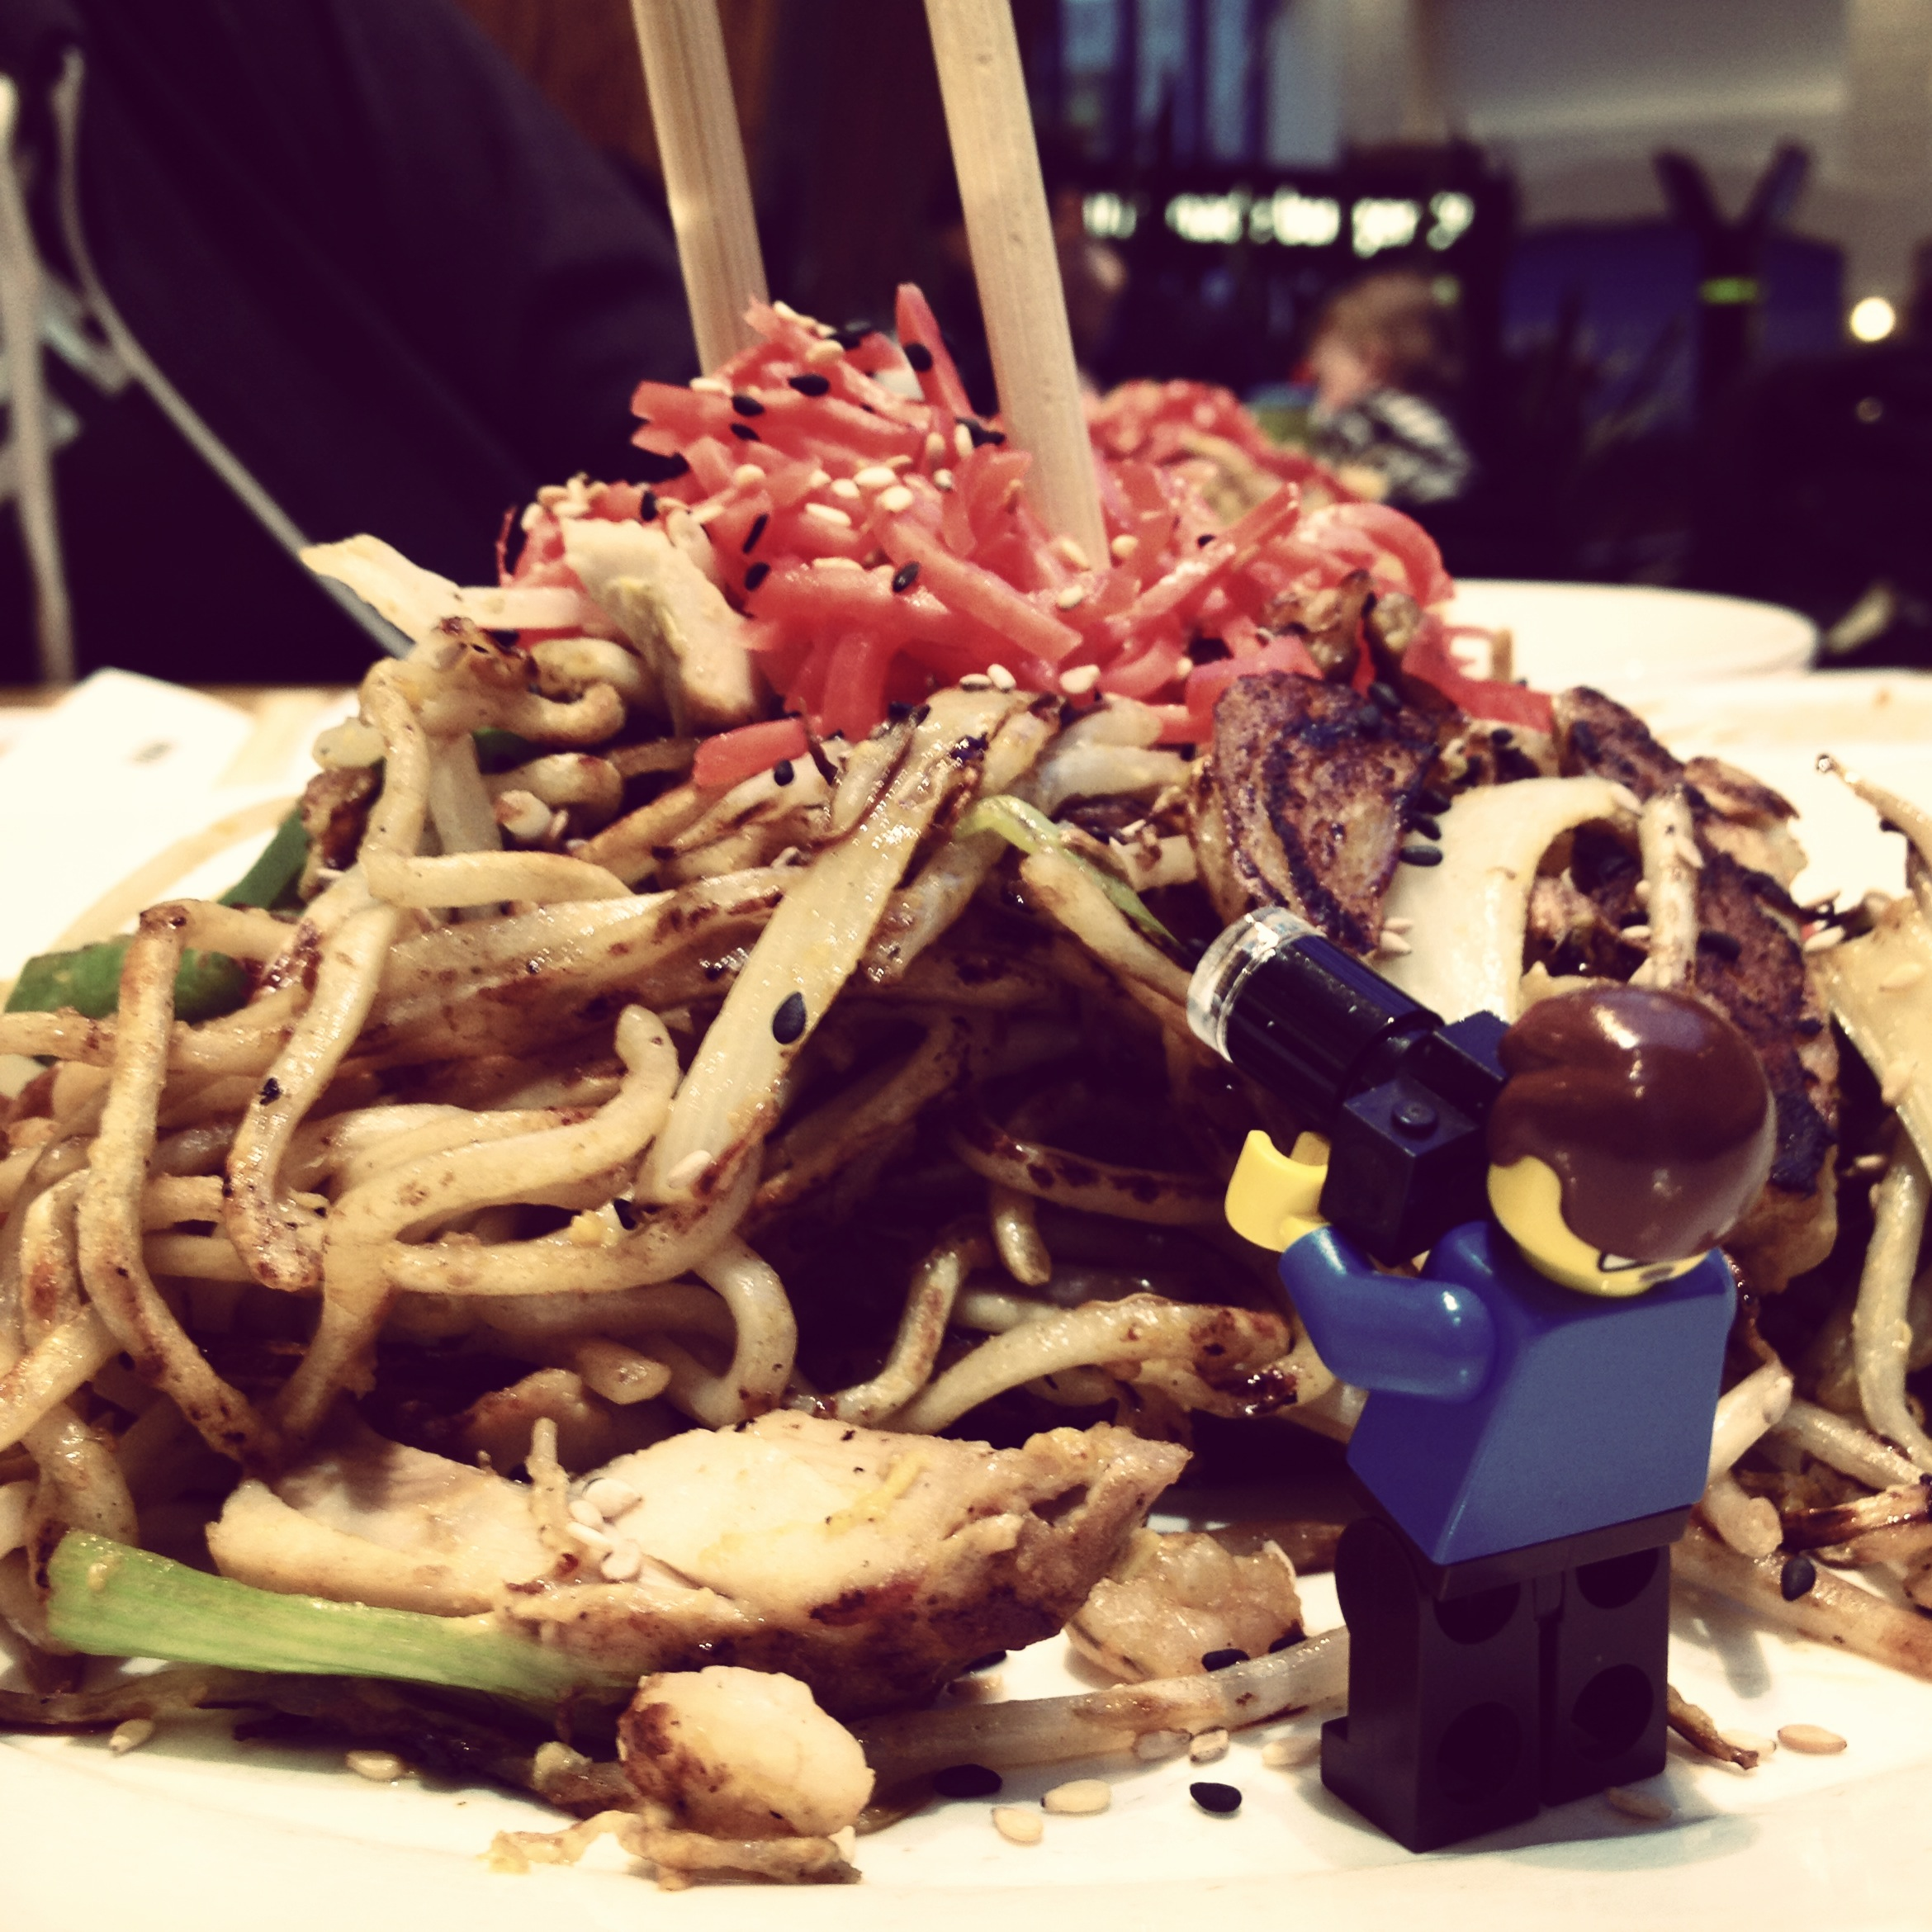 Lawrence faces noodle mountain